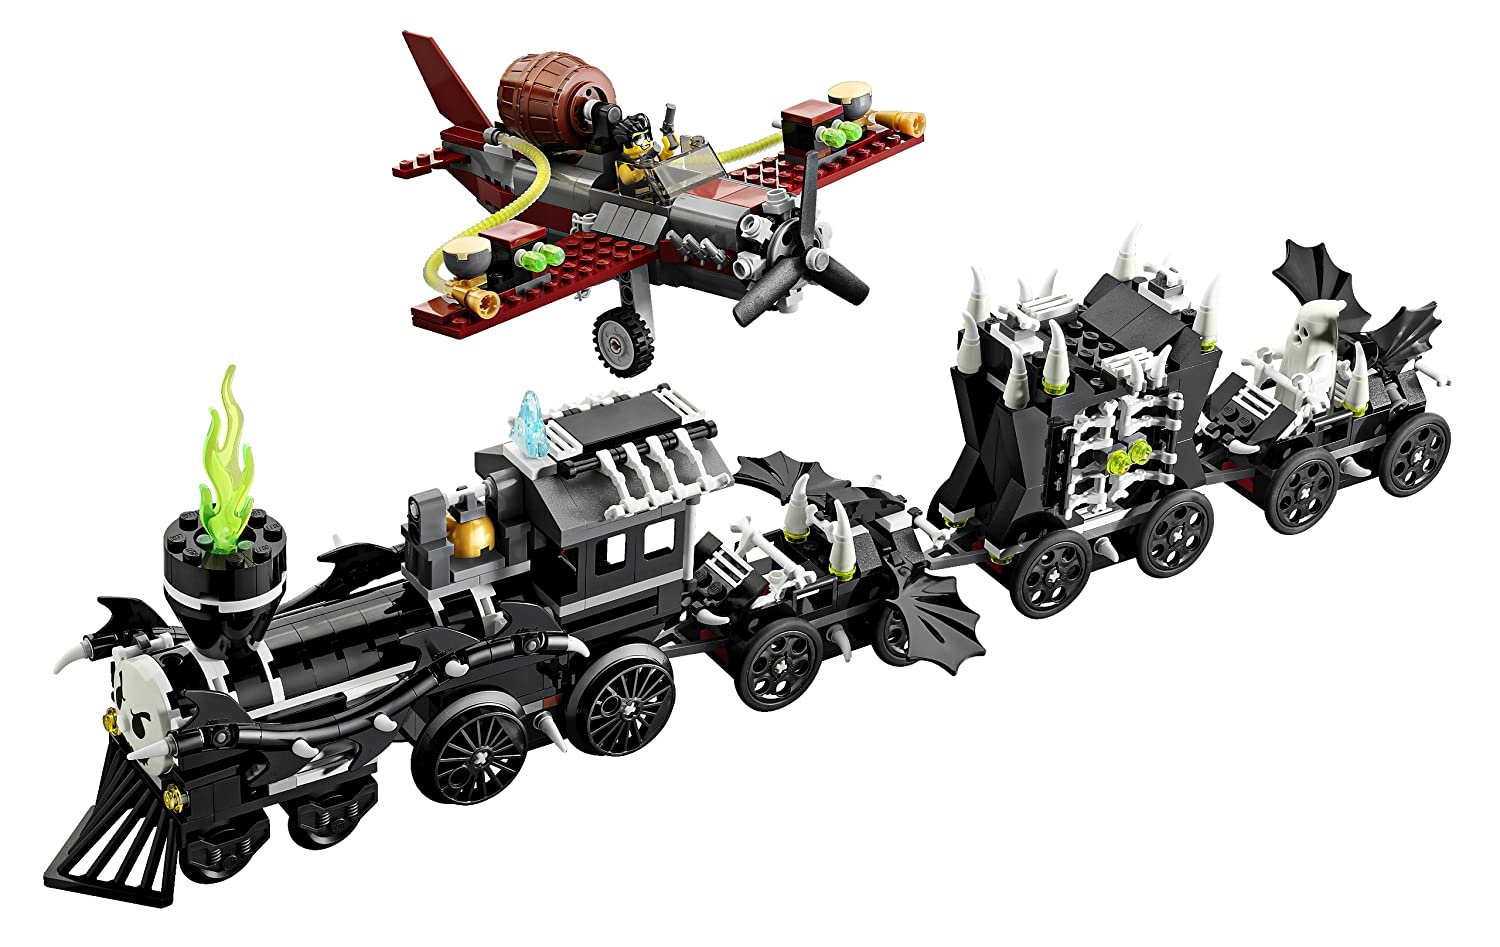 amazoncom lego monster fighters 9467 the ghost train toys games - Lego Halloween Train